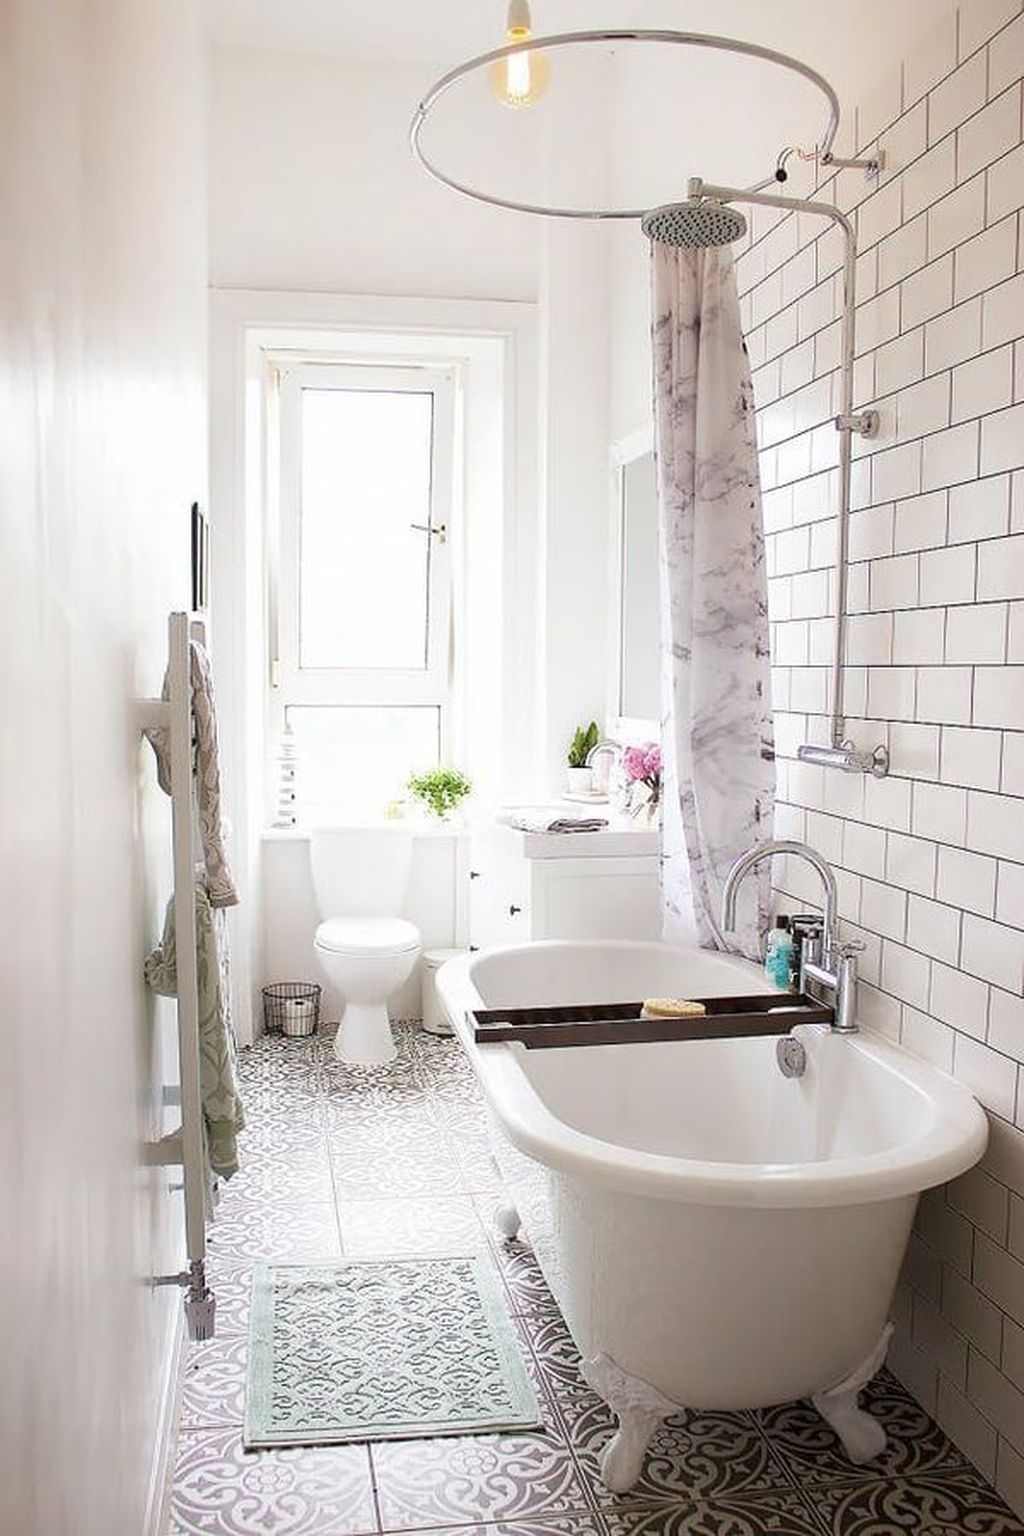 Baignoire Etroite Cool 36 Stunning Small Bathroom Ideas For Apartment Bad